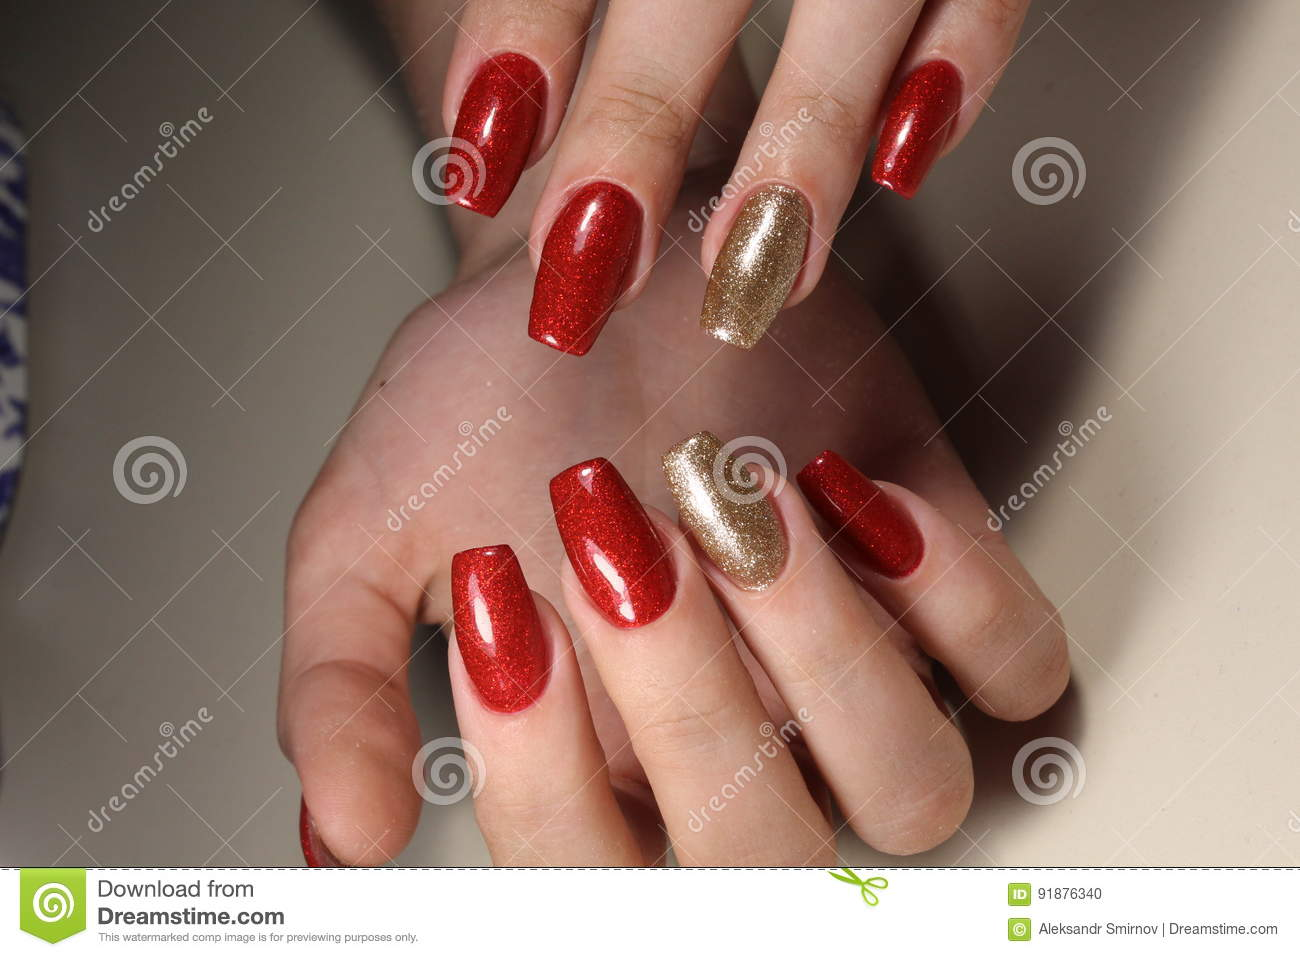 Manicure Nails Red And Gold Stock Photo - Image of nail, manicure ...